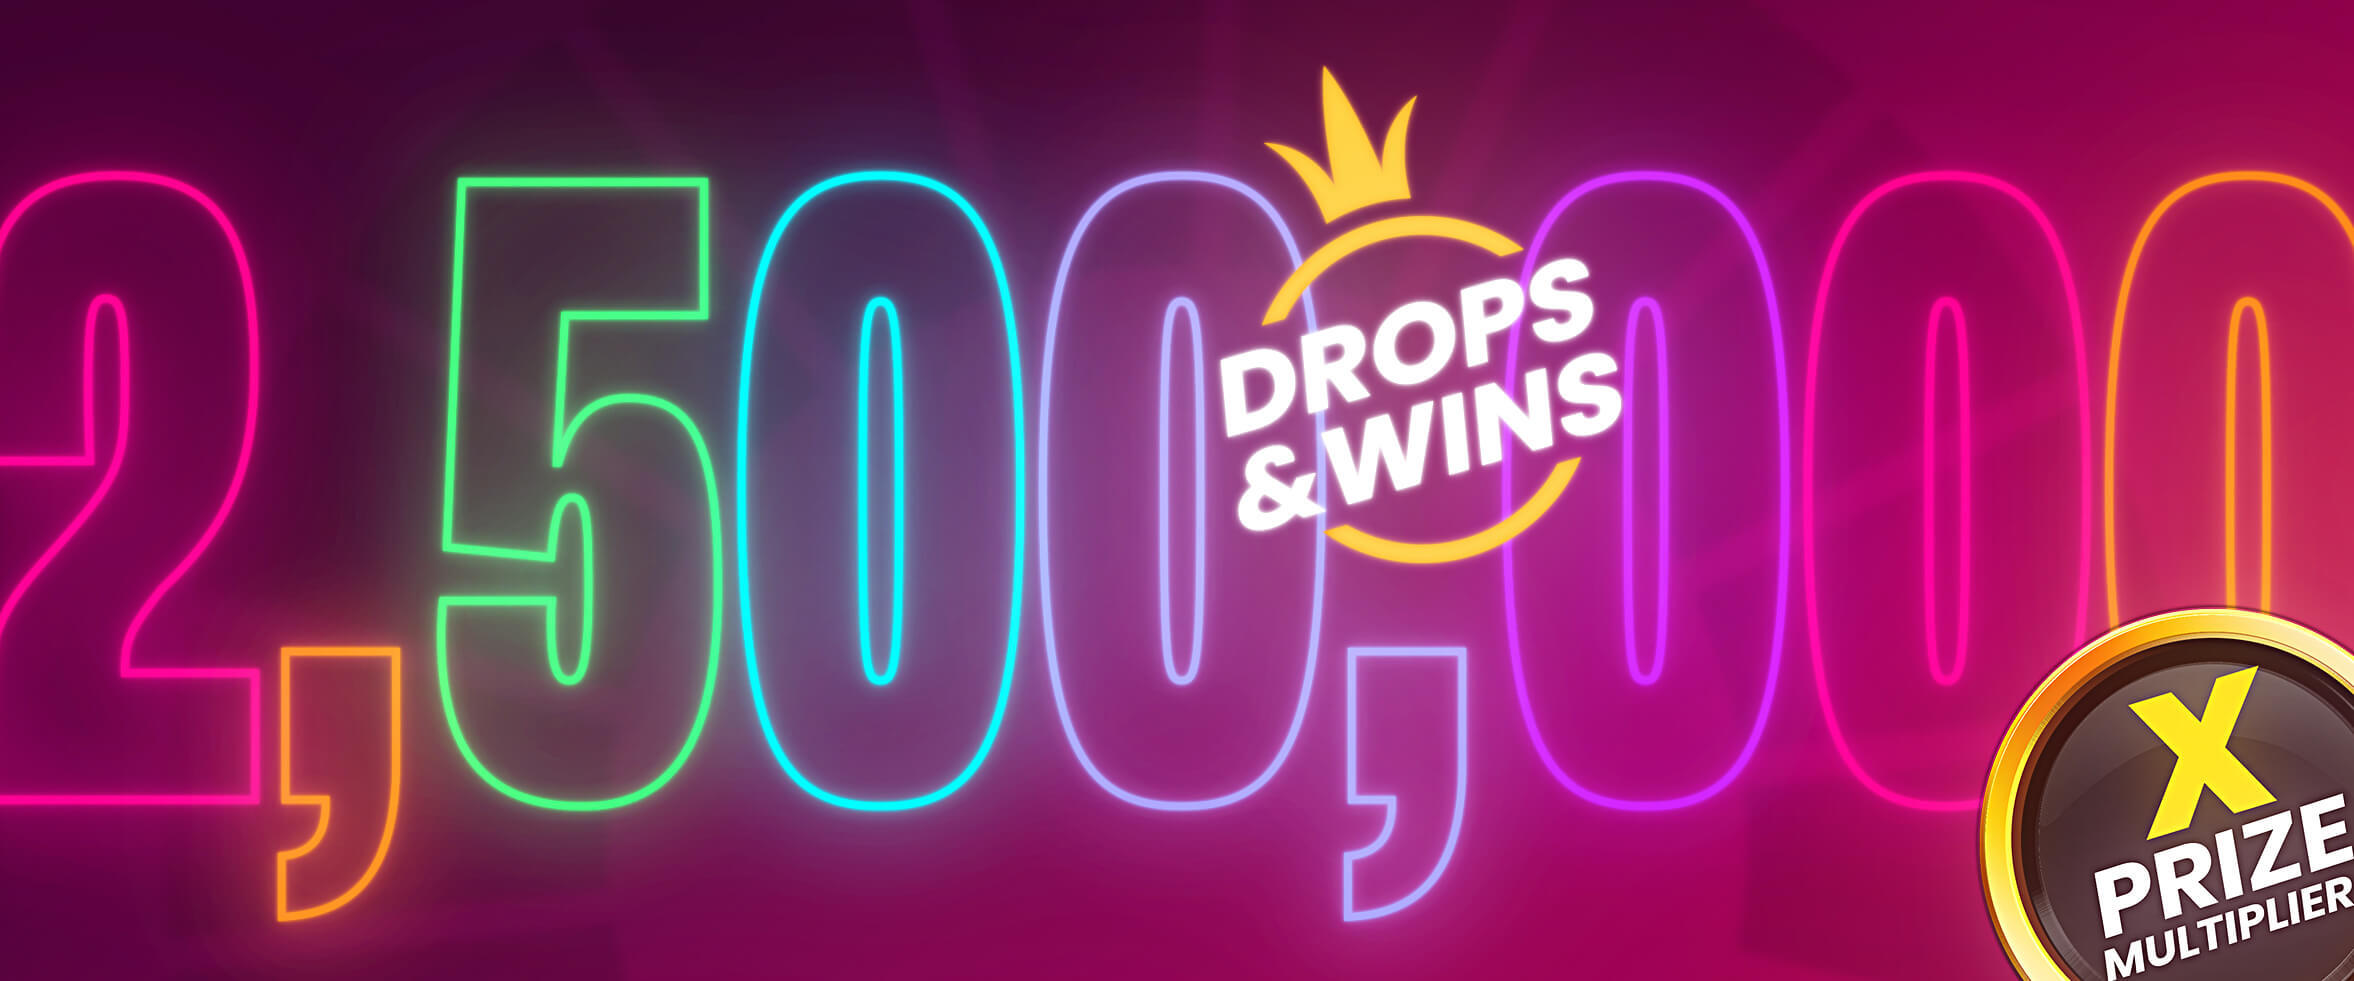 Drops and Wins 2021 - $2,500,000 in Prizes!